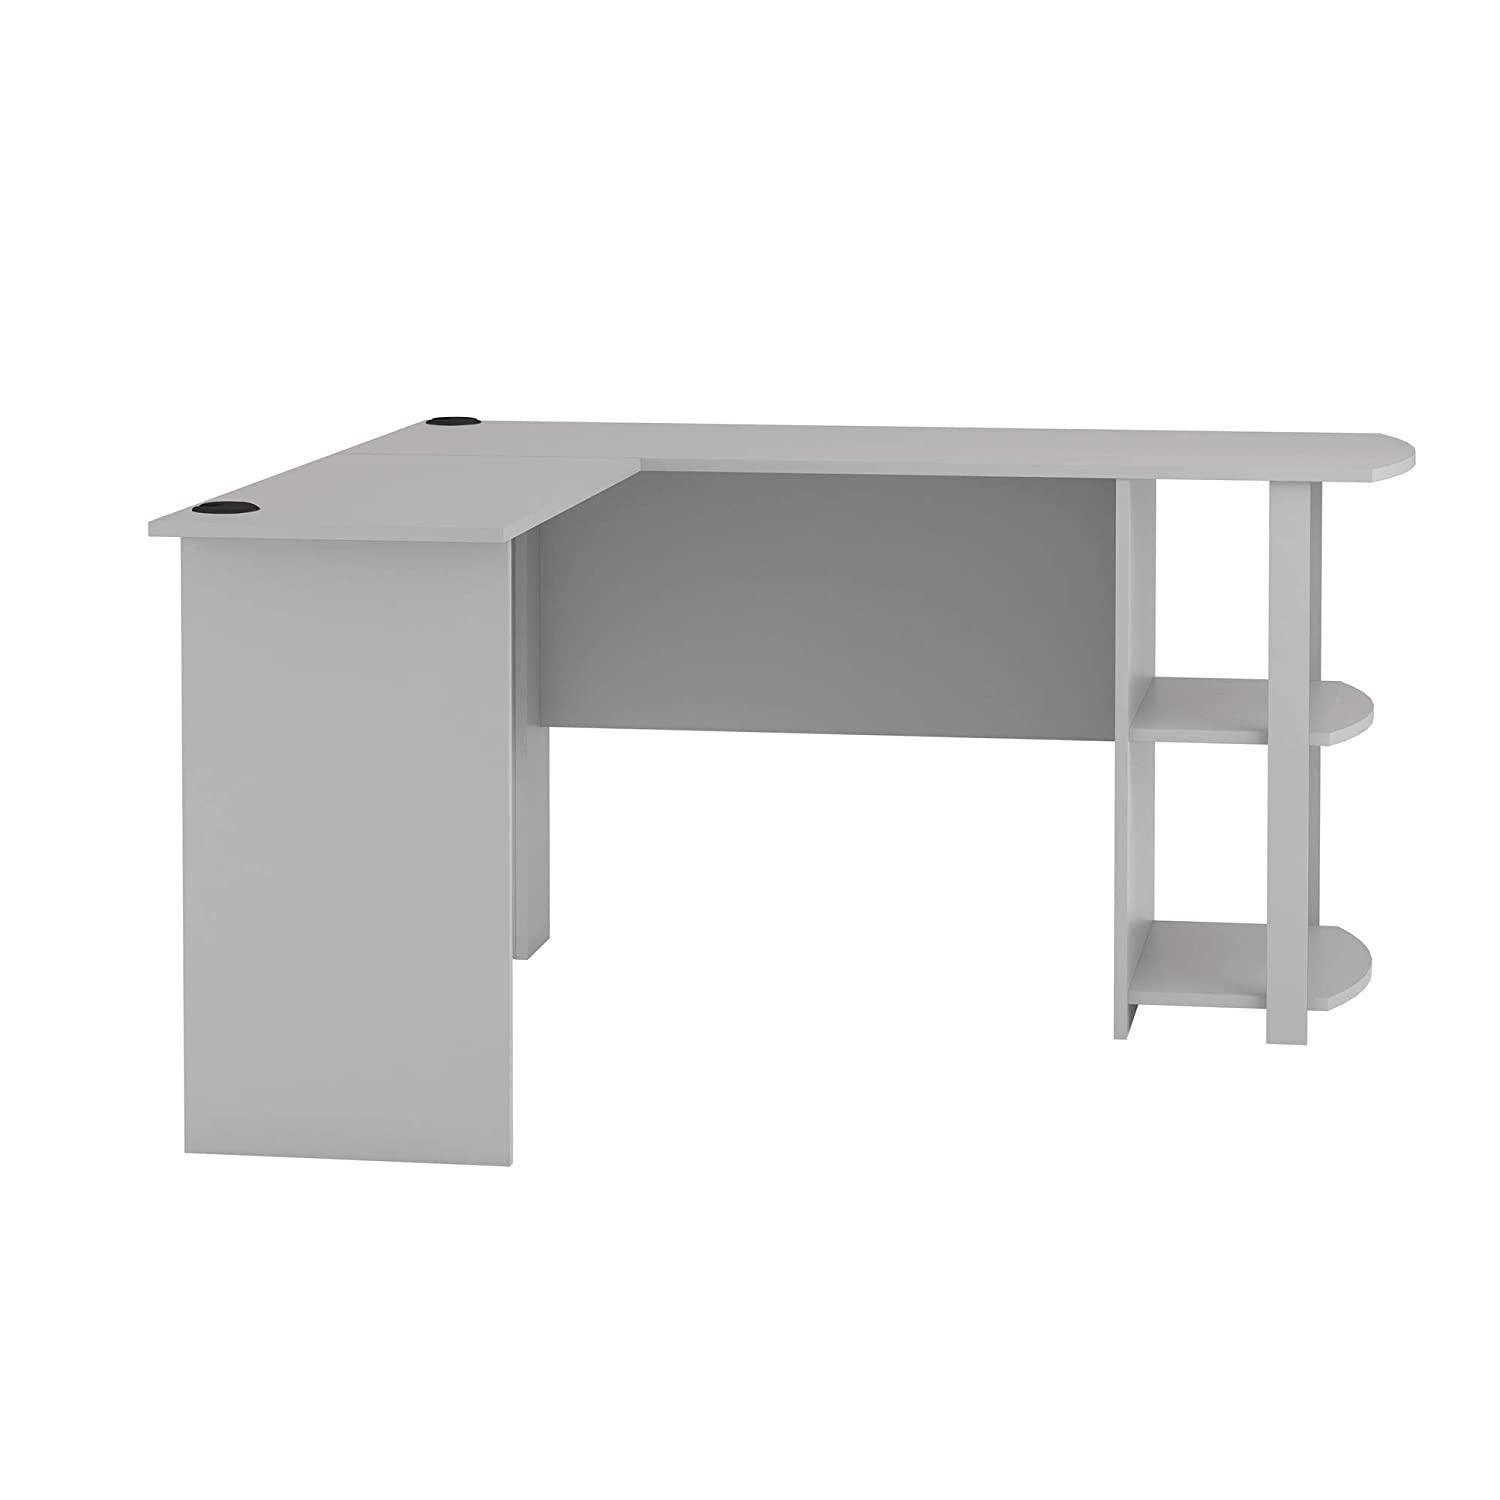 Ameriwood Home Dakota L-Shaped Desk with Bookshelves, Dove Gray